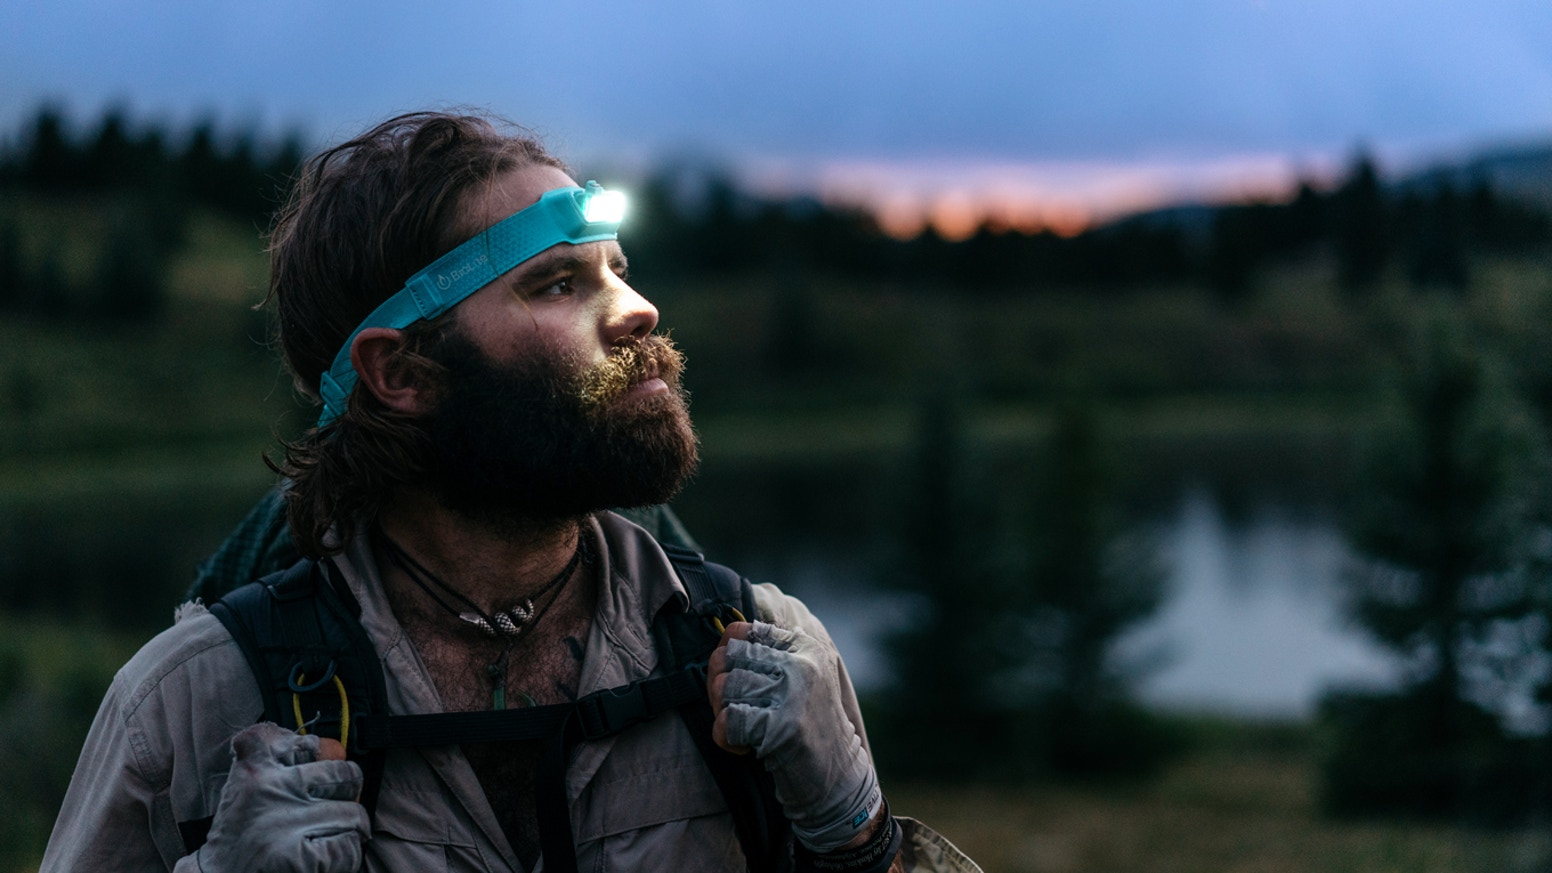 $527,514 - Product: BioLite HeadLamp (Wildly Capable, Simply Comfortable)Platform: Kickstarter